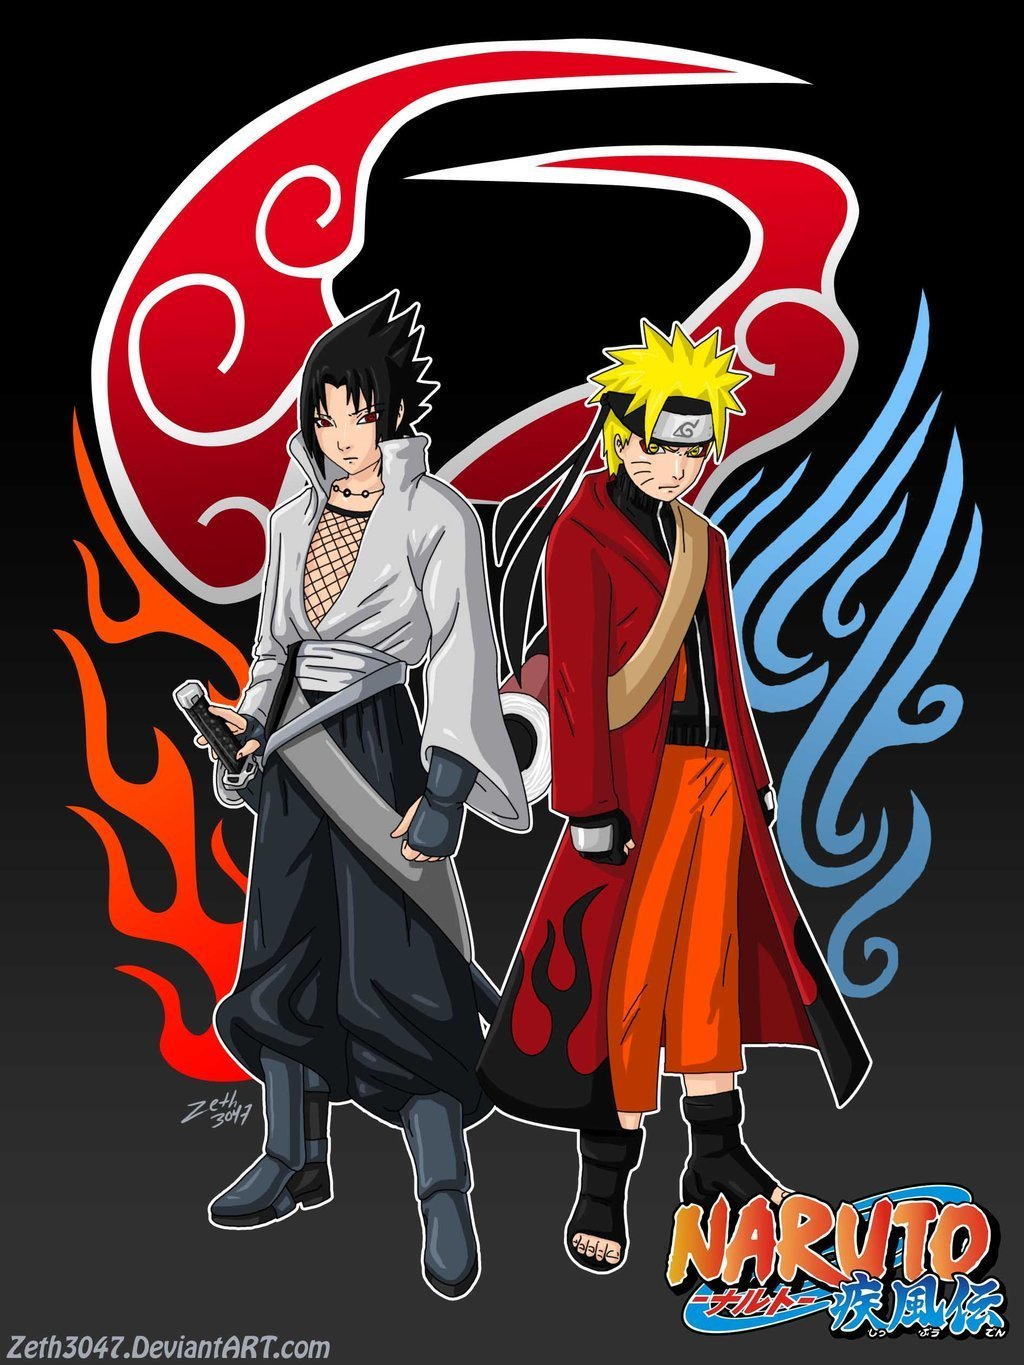 sasuke vs naruto - Sasuke vs naruto Fan Art (8205477) - Fanpop ...